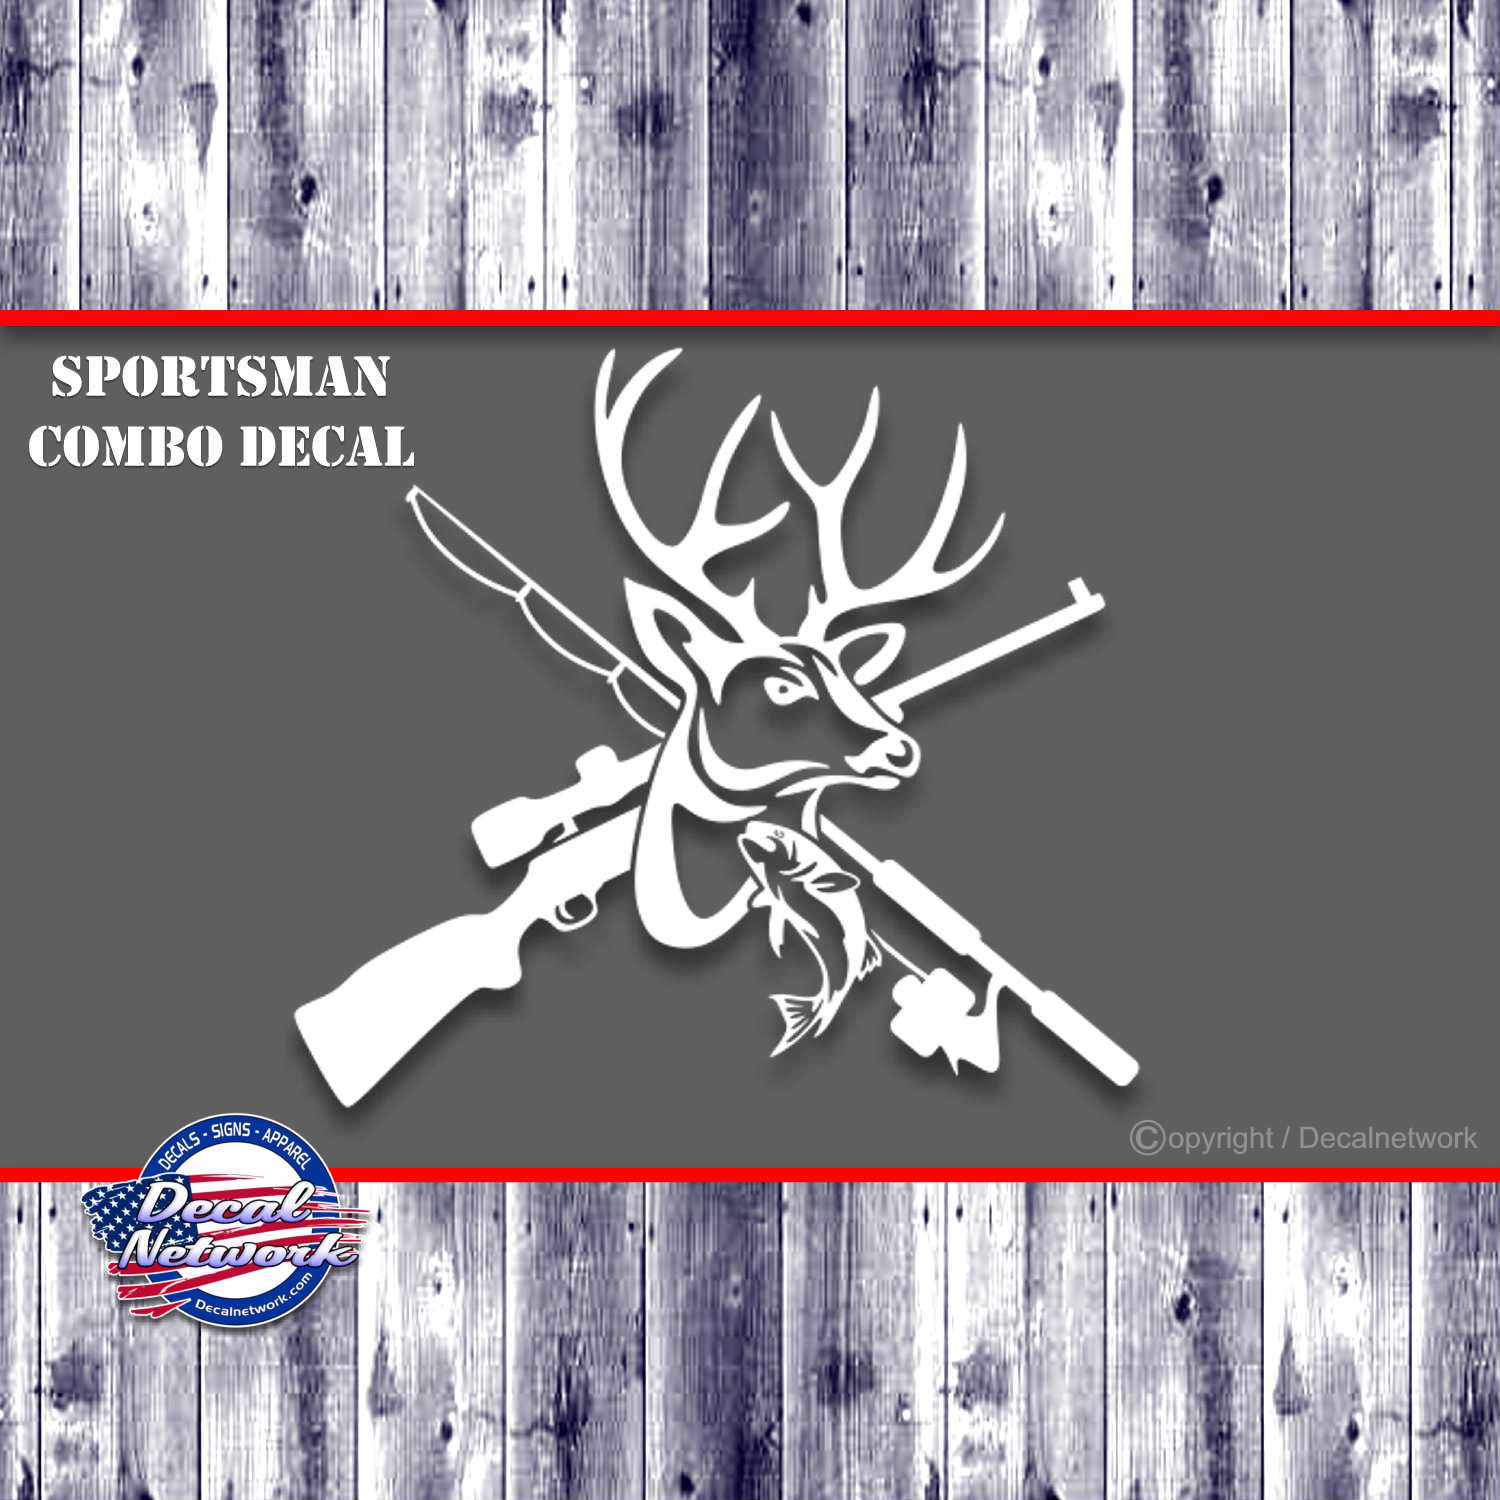 Sportsman combo decal hunting fishing deer fish vinyl decal multiple sizes and color options